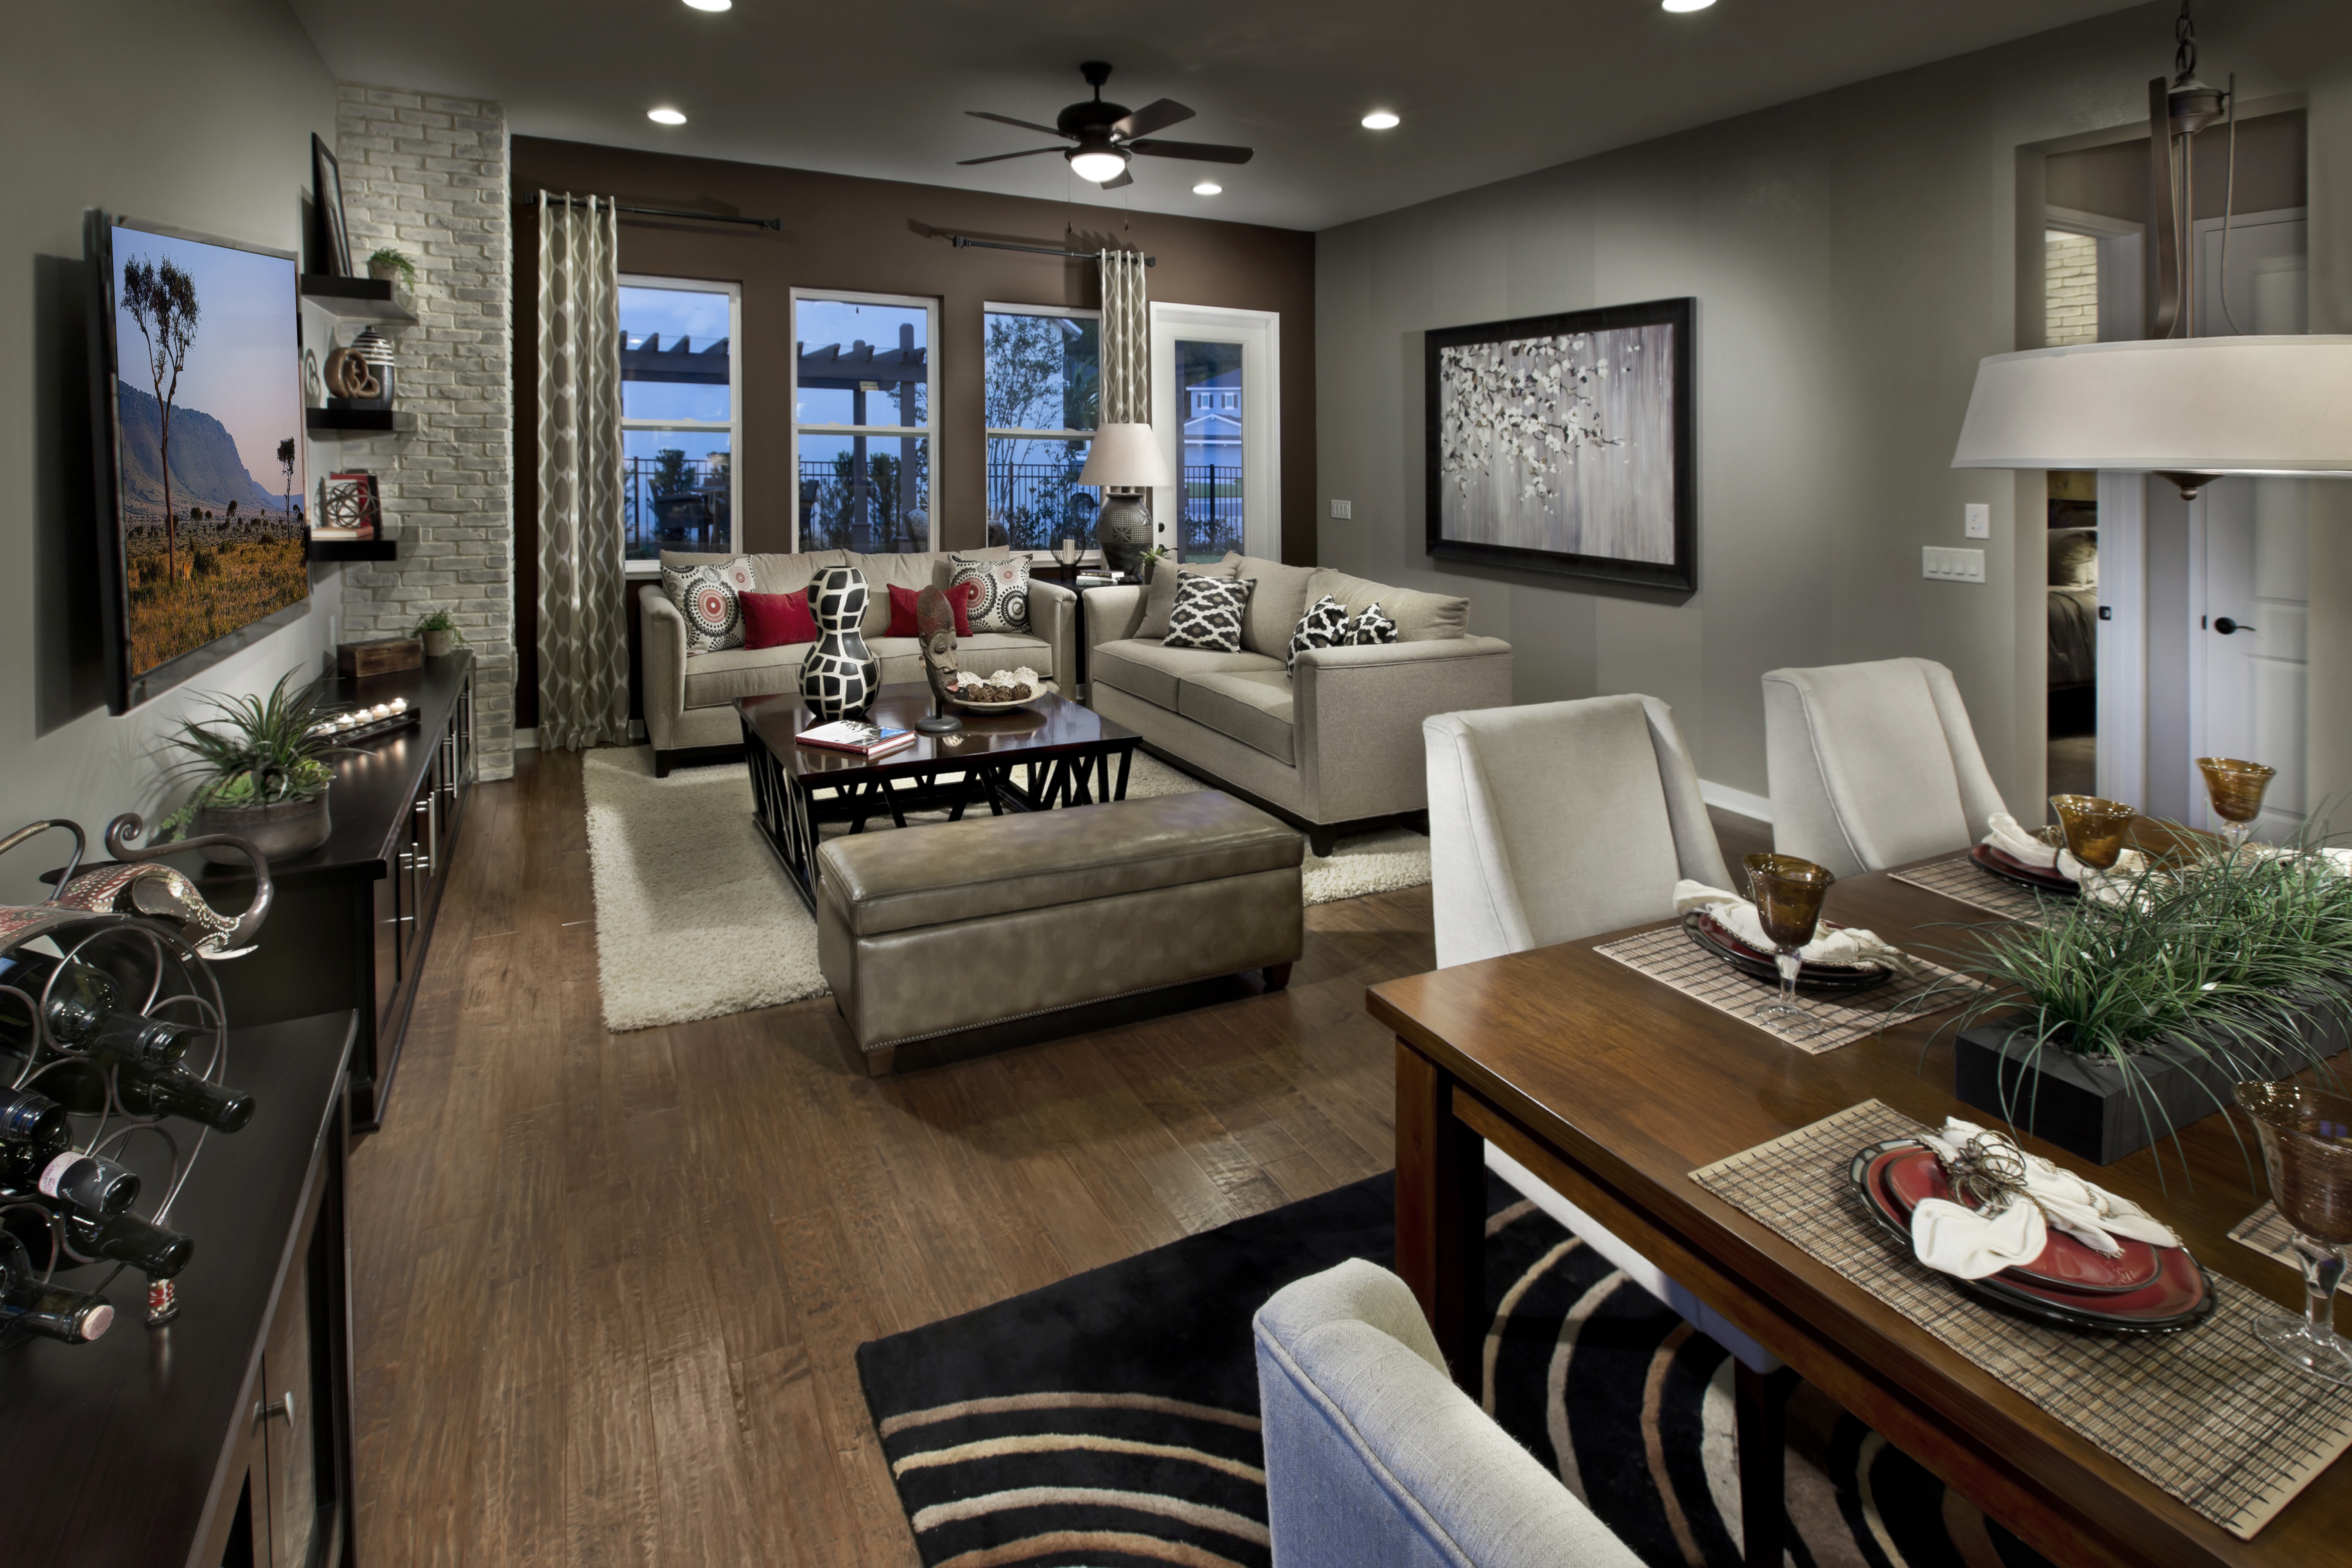 Ashton Woods Announces the Release of Grove and Evergreen Series Homes in the New Asturia Community in Tampa